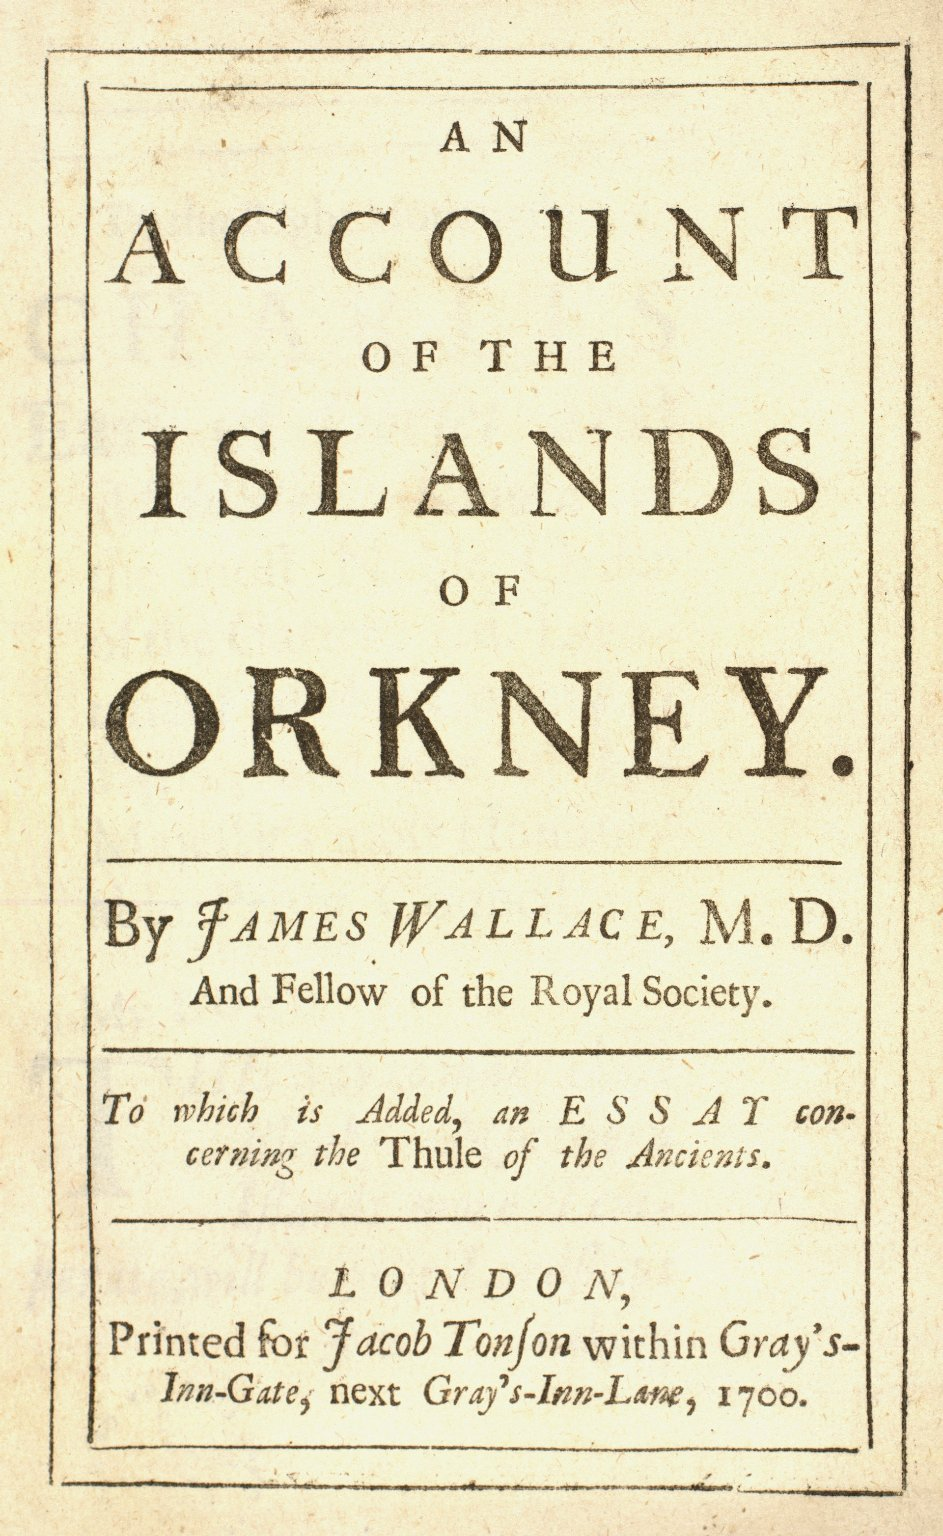 An account of the Islands of Orkney. [1 of 1]